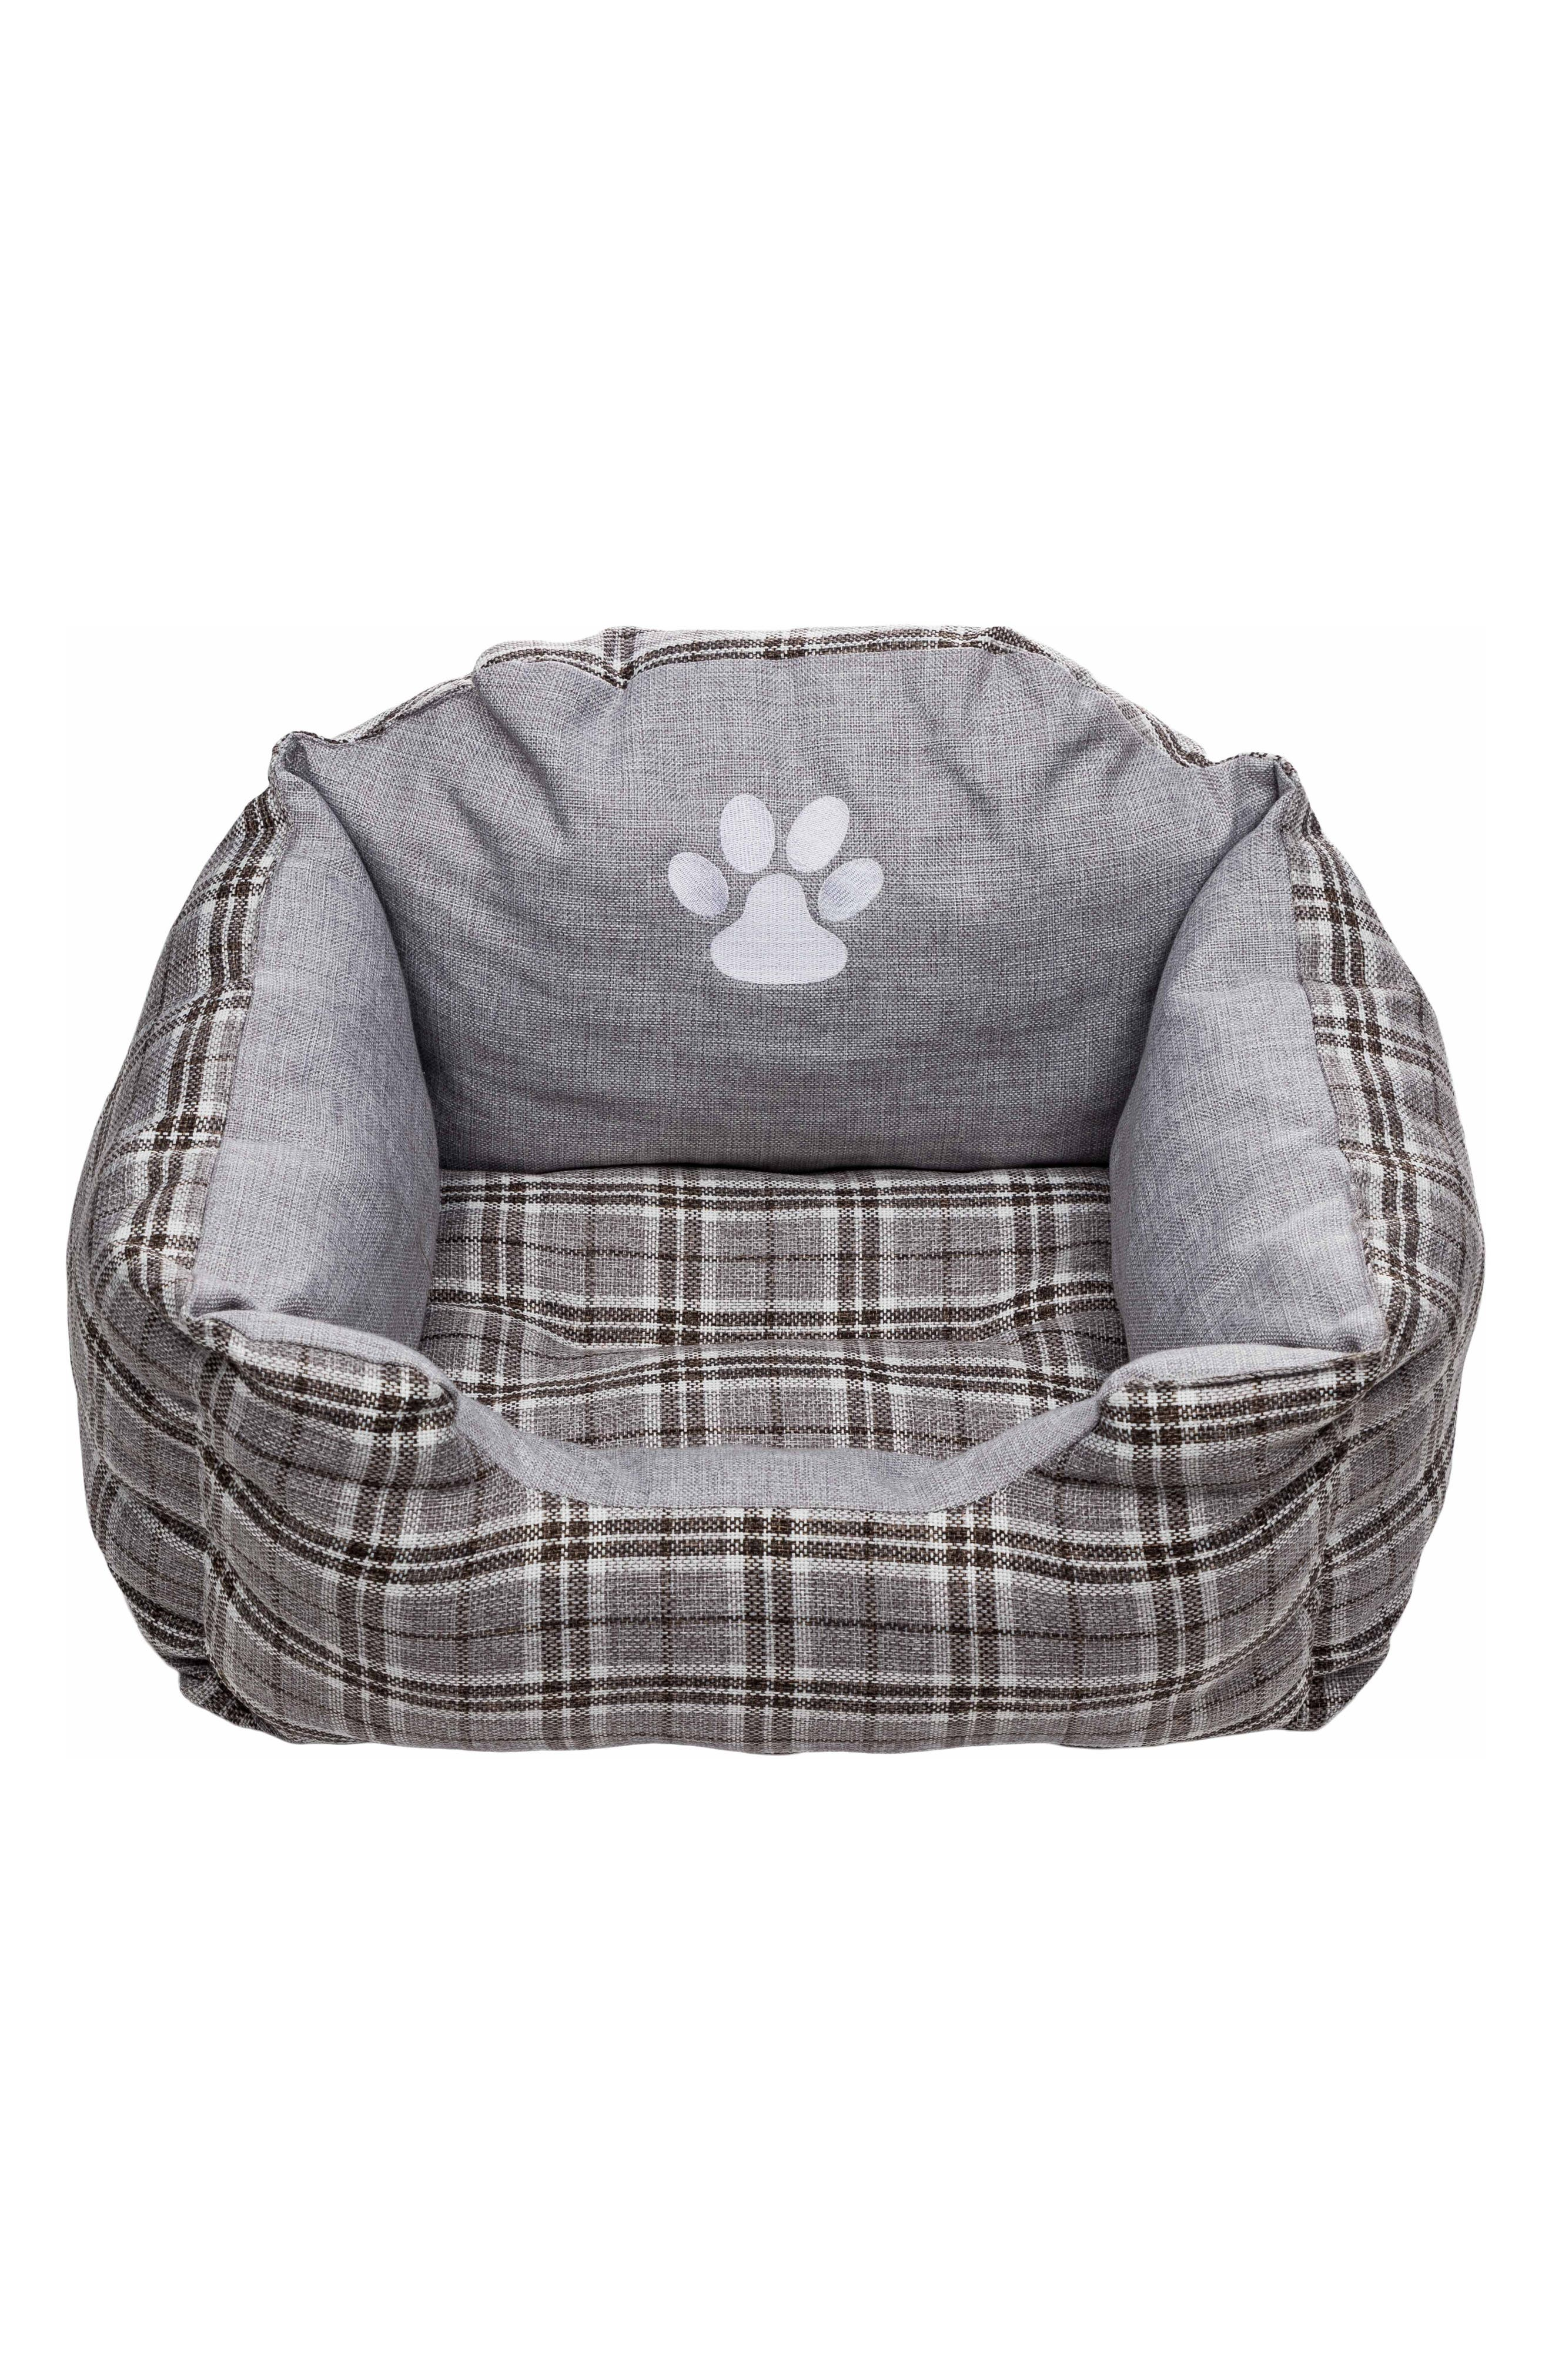 Harlee Small Square Pet Bed,                         Main,                         color, 020